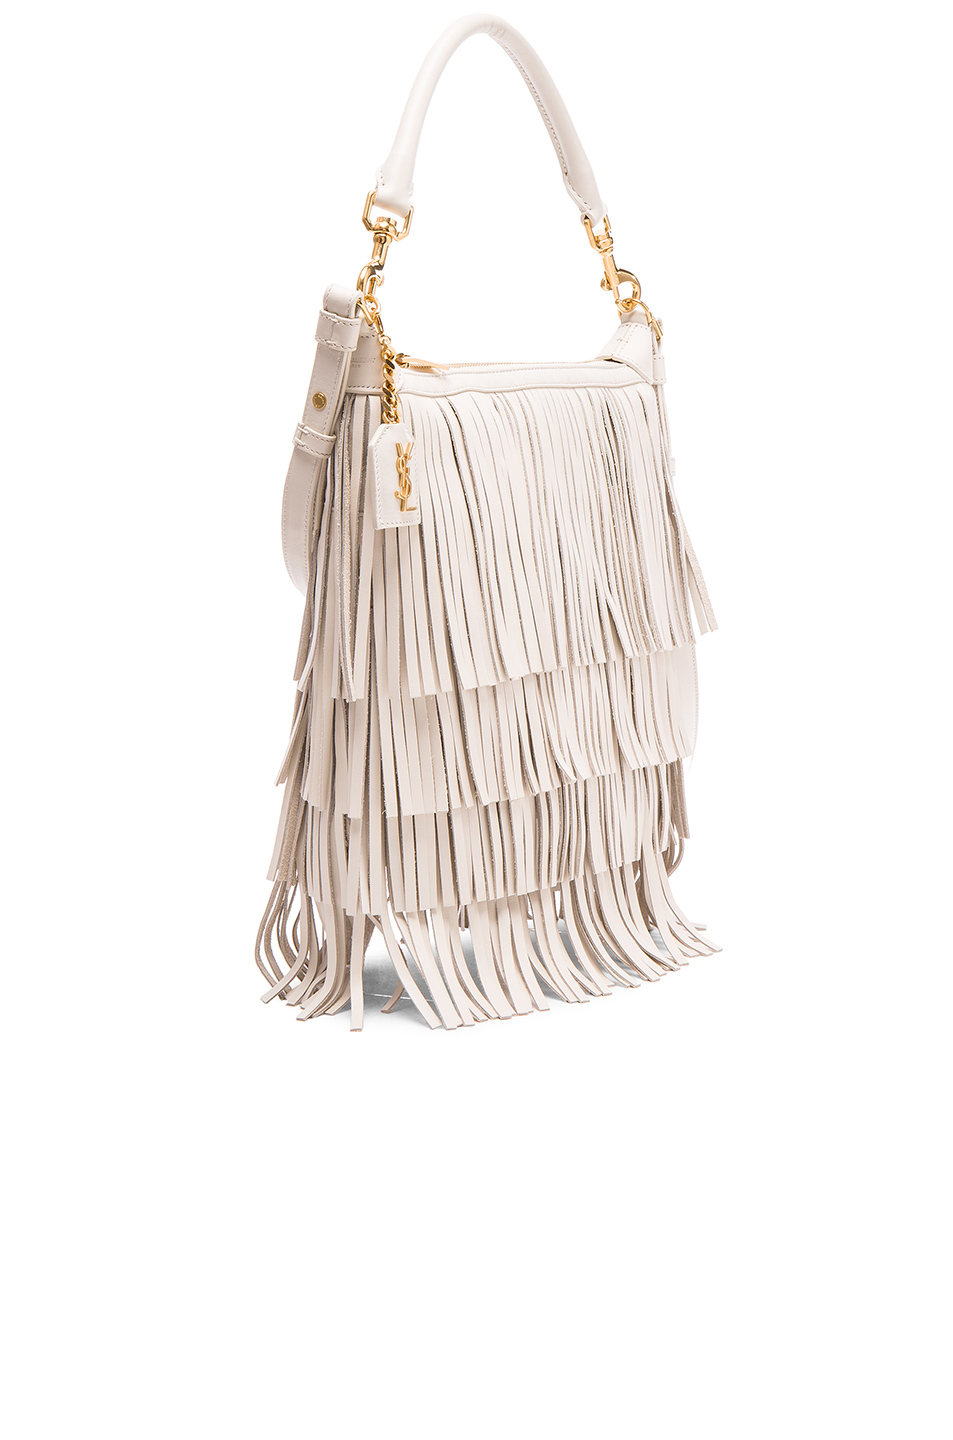 ysl keychain - Saint laurent Emmanuelle Small Fringed Hobo Leather Bag in White ...